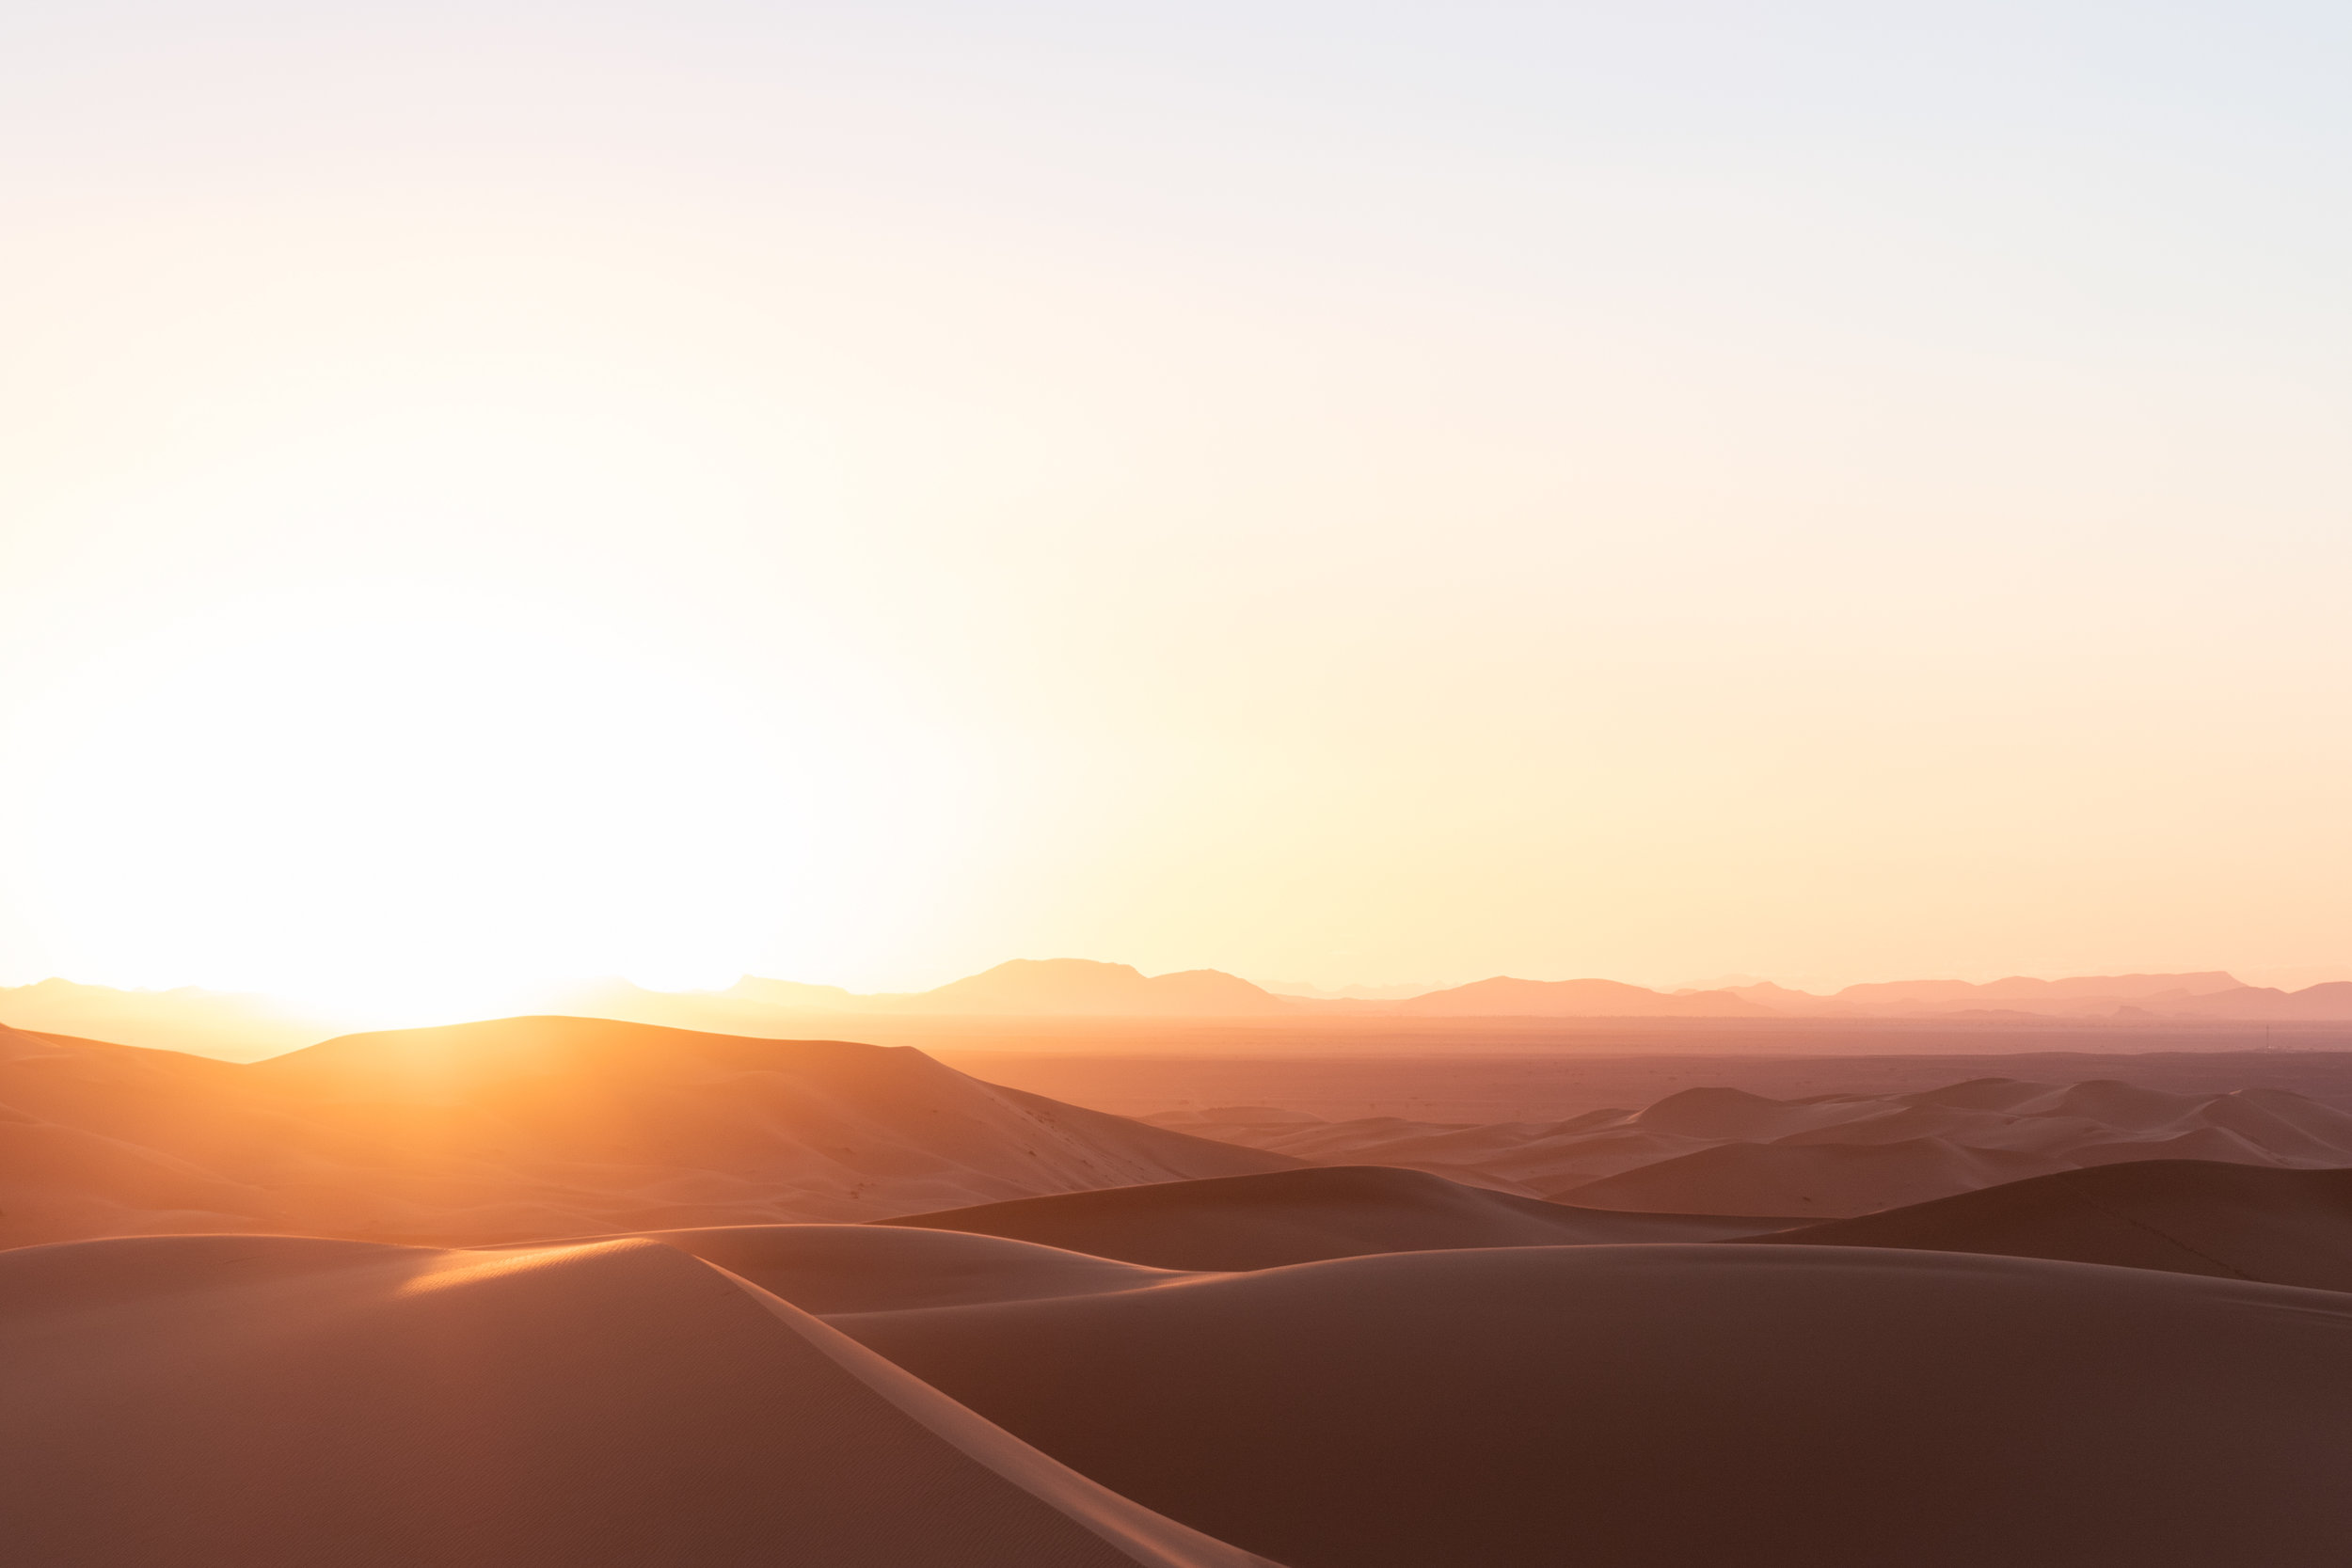 view of the sunset in the sahara from the top of a sand dune